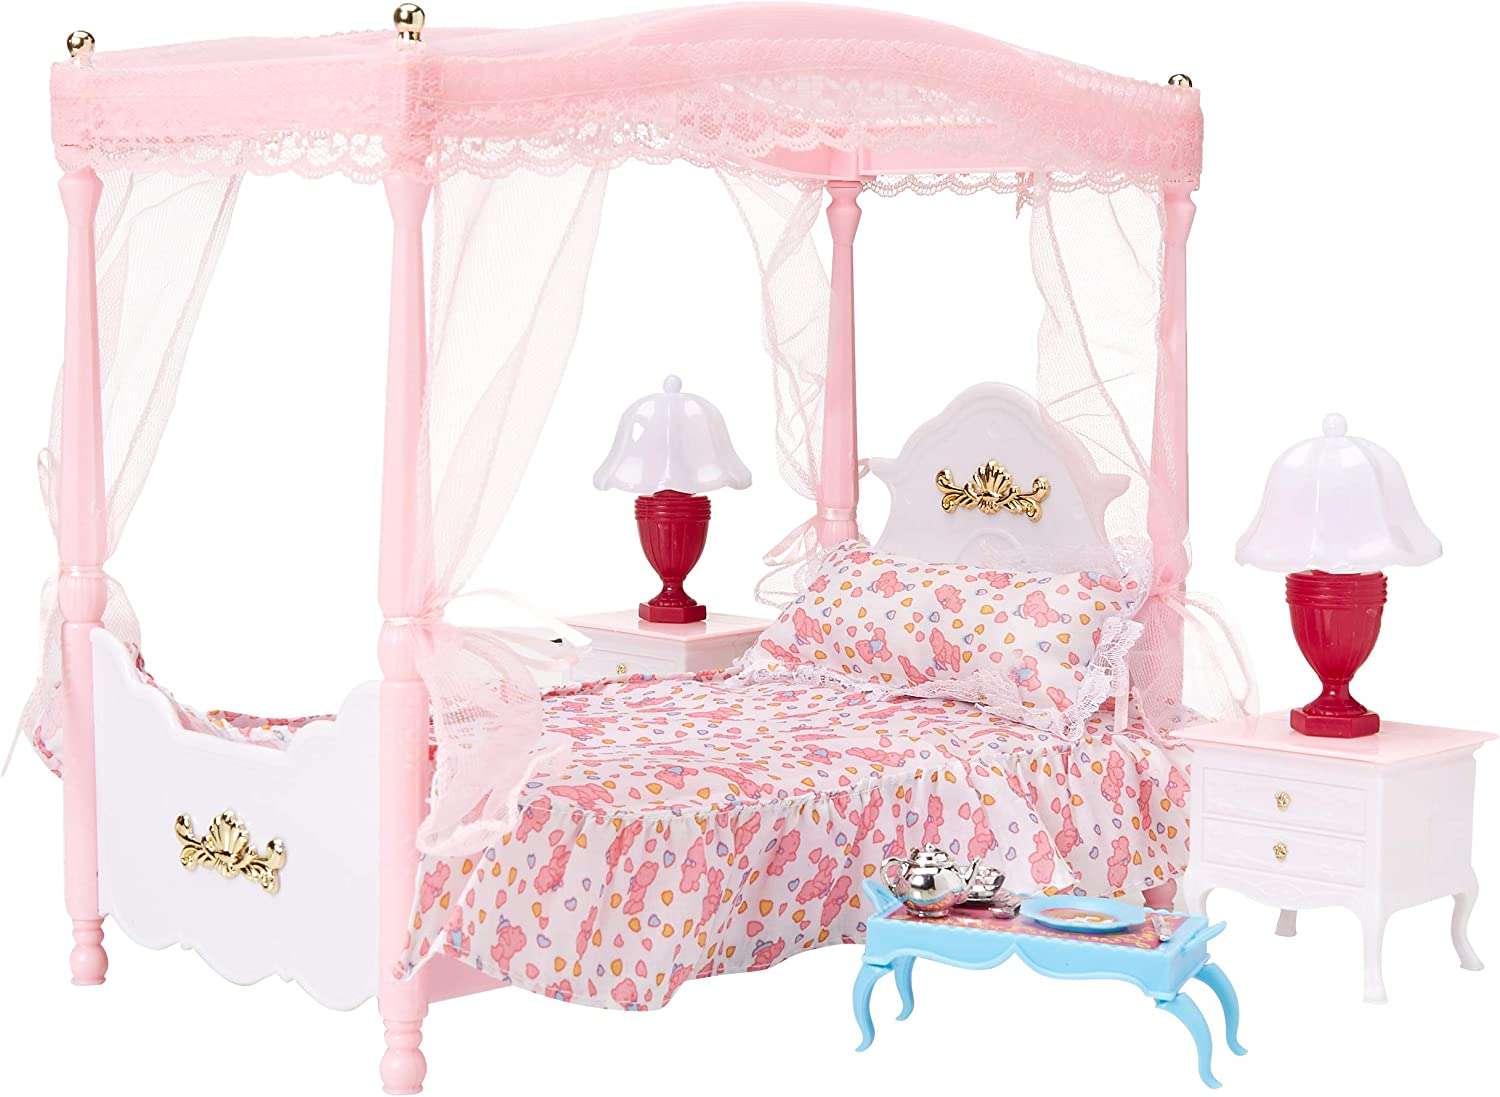 Irra Bay Dollhouse Furniture (Master Bedroom)